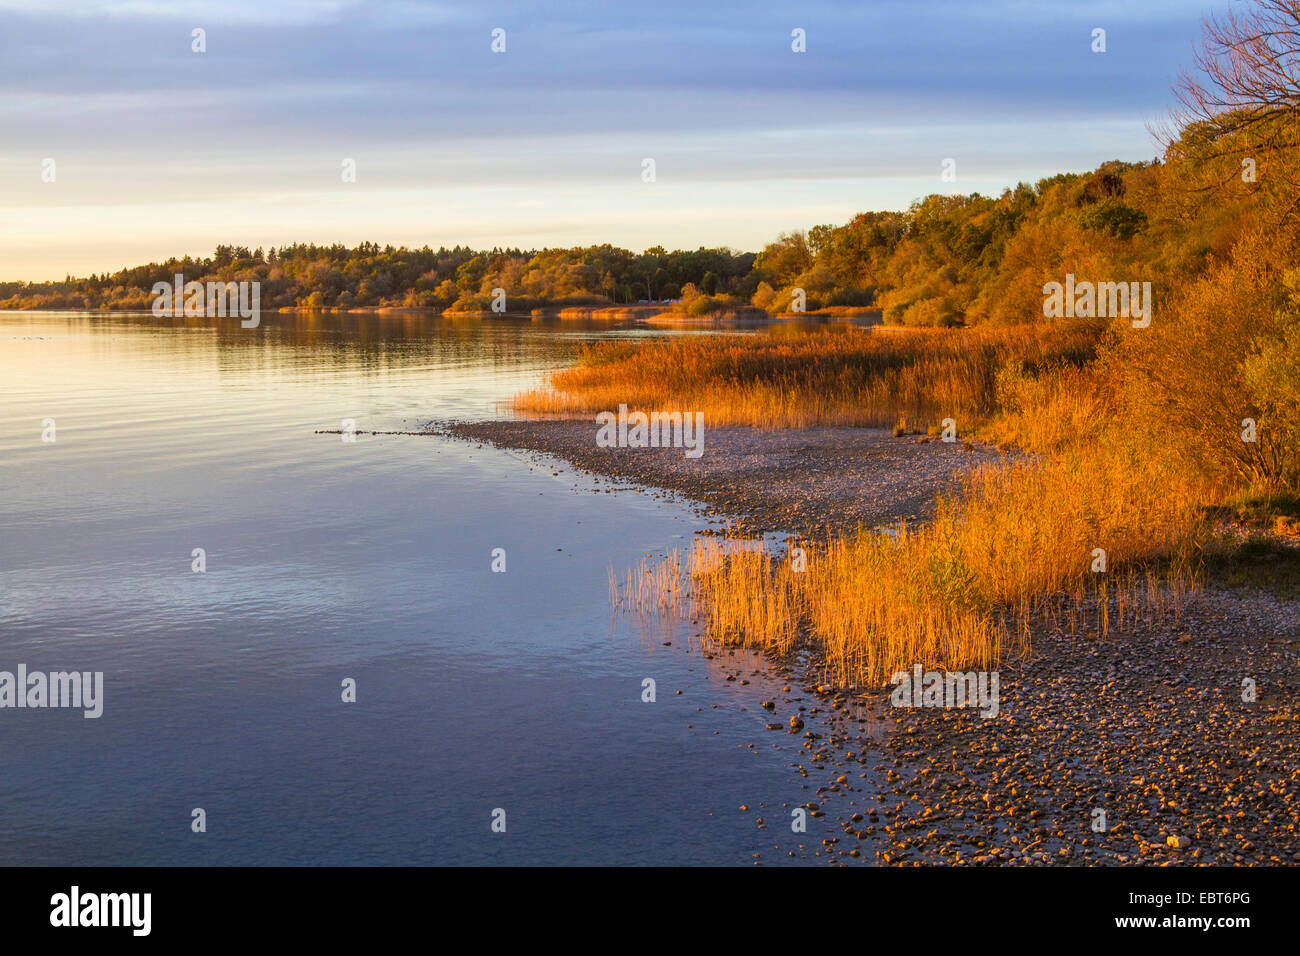 lake with reed bank in evening light, Germany, Bavaria, Lake Chiemsee, Chieming - Stock Image